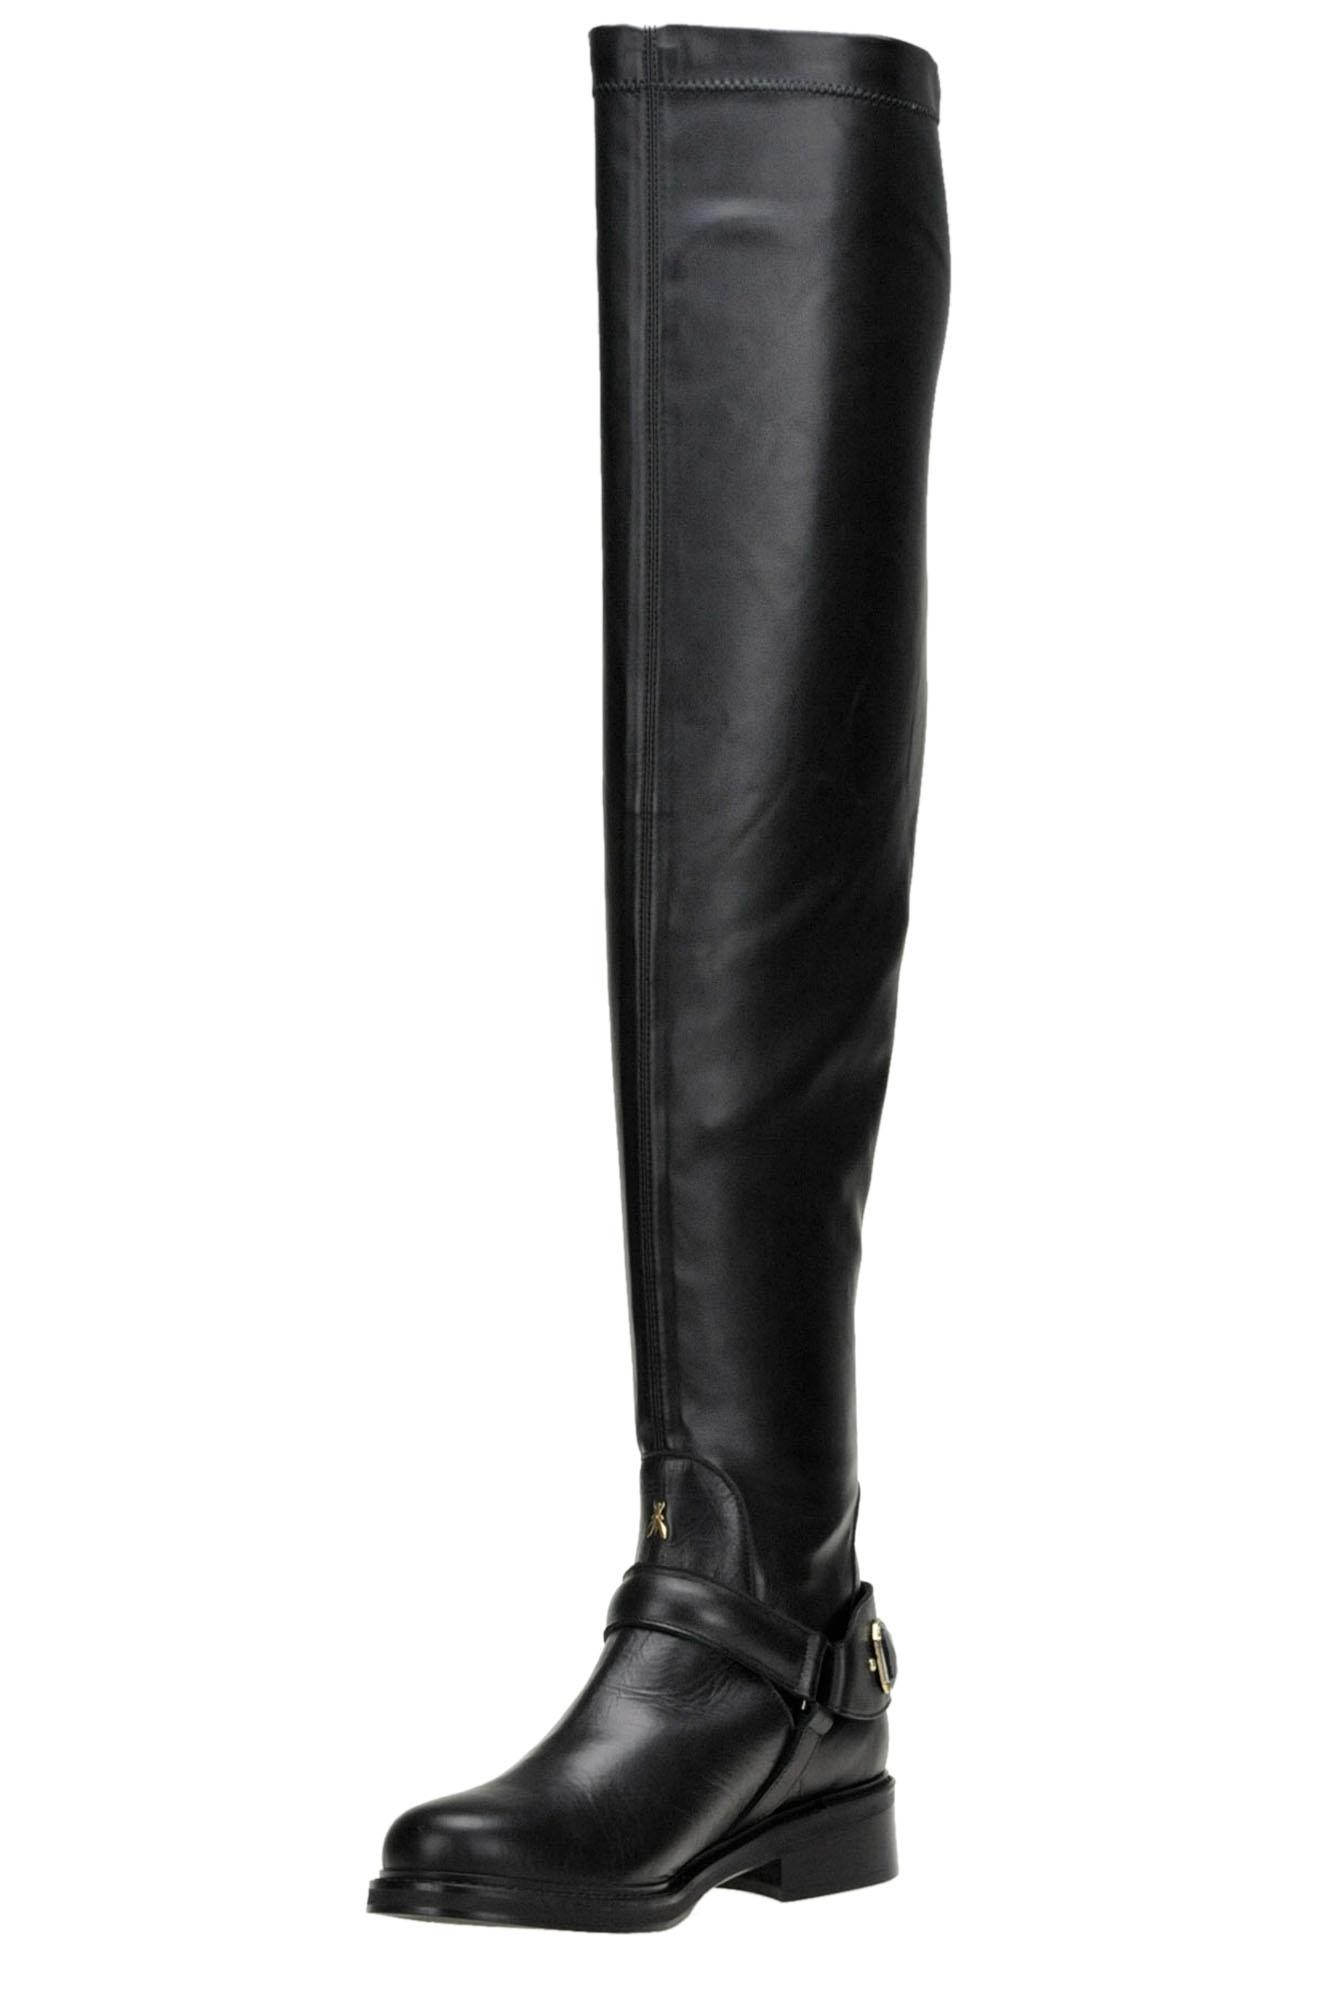 Over Leather Leather Knee The Boots Over Boots The Knee sdBrCtxhQ